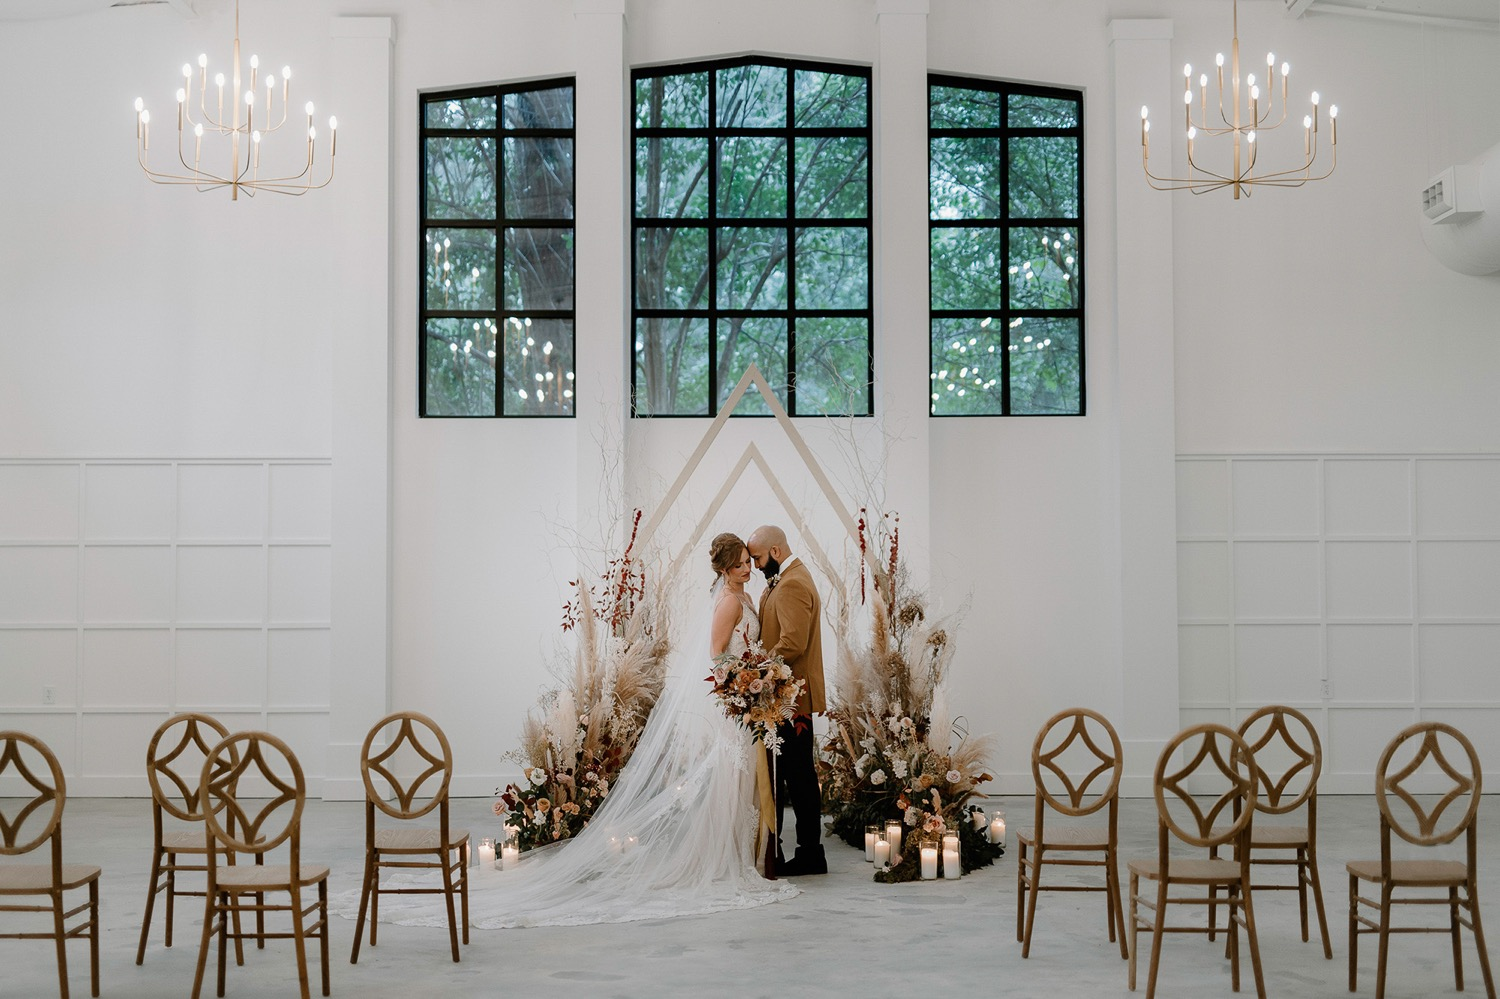 A wedding couple is getting married in the Distillery in one of the North Carolina wedding venues.